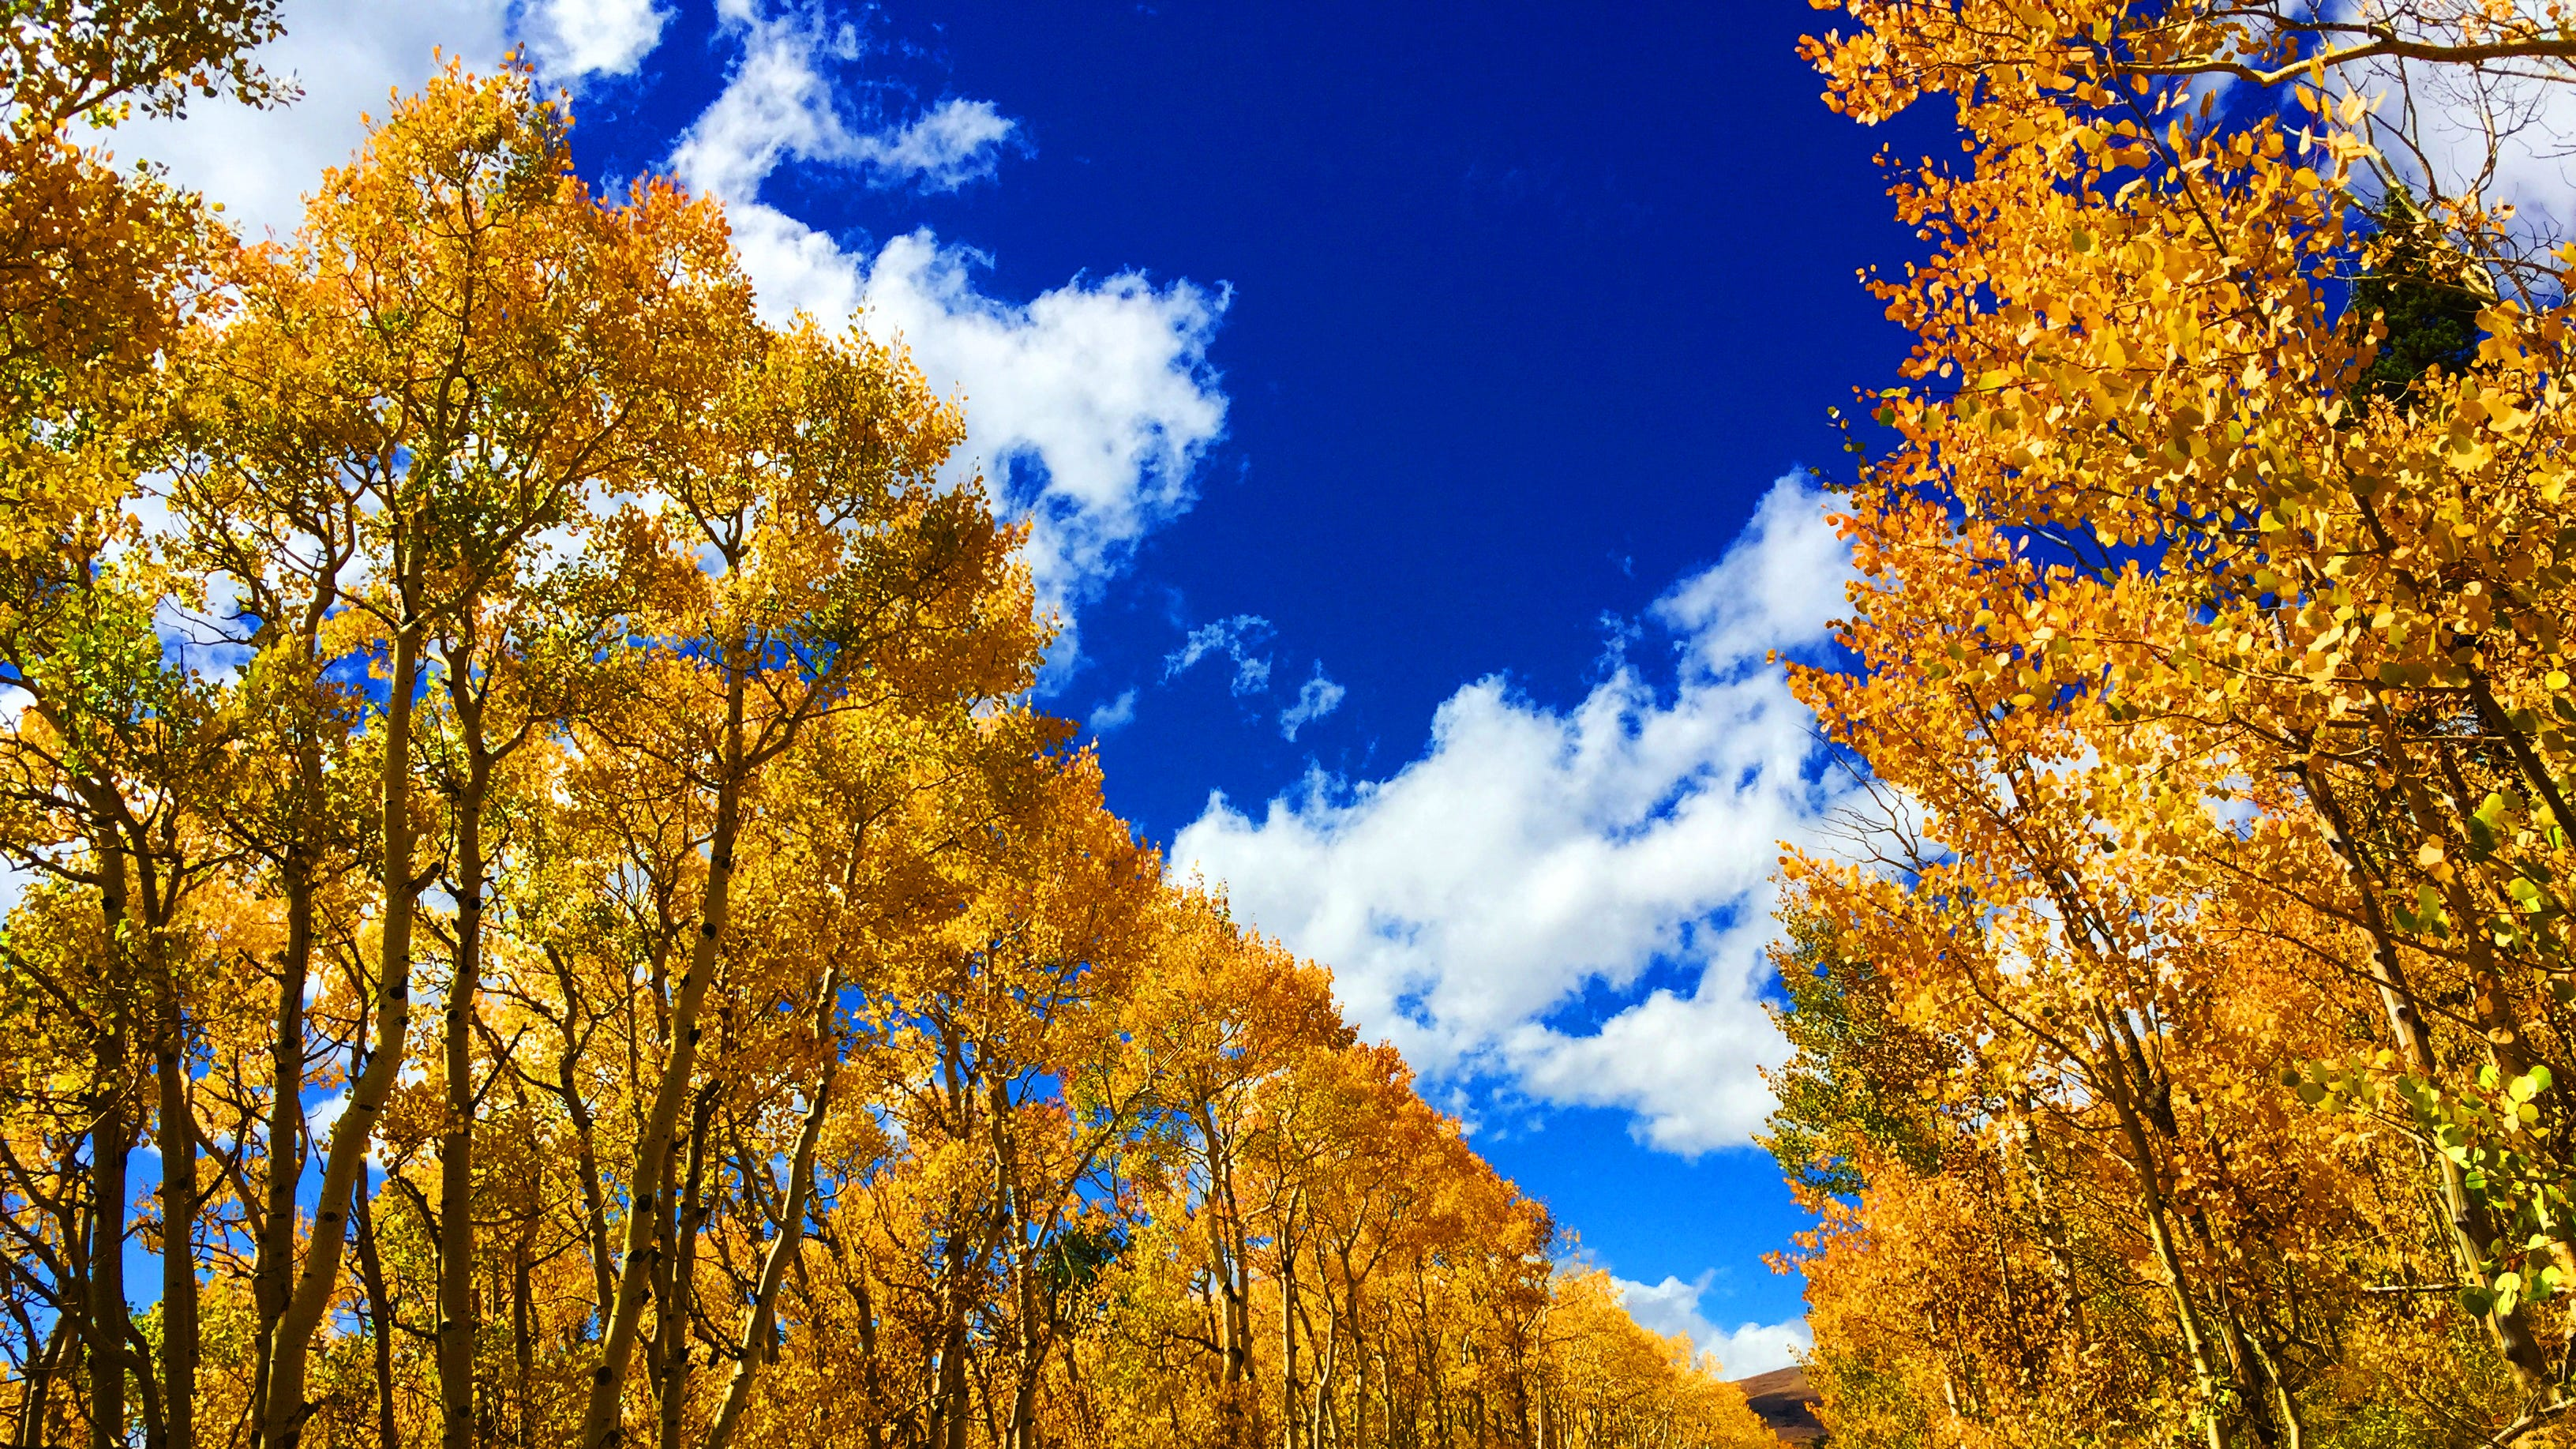 Autum Images: First Day Of Fall: Autumnal Equinox Is Saturday